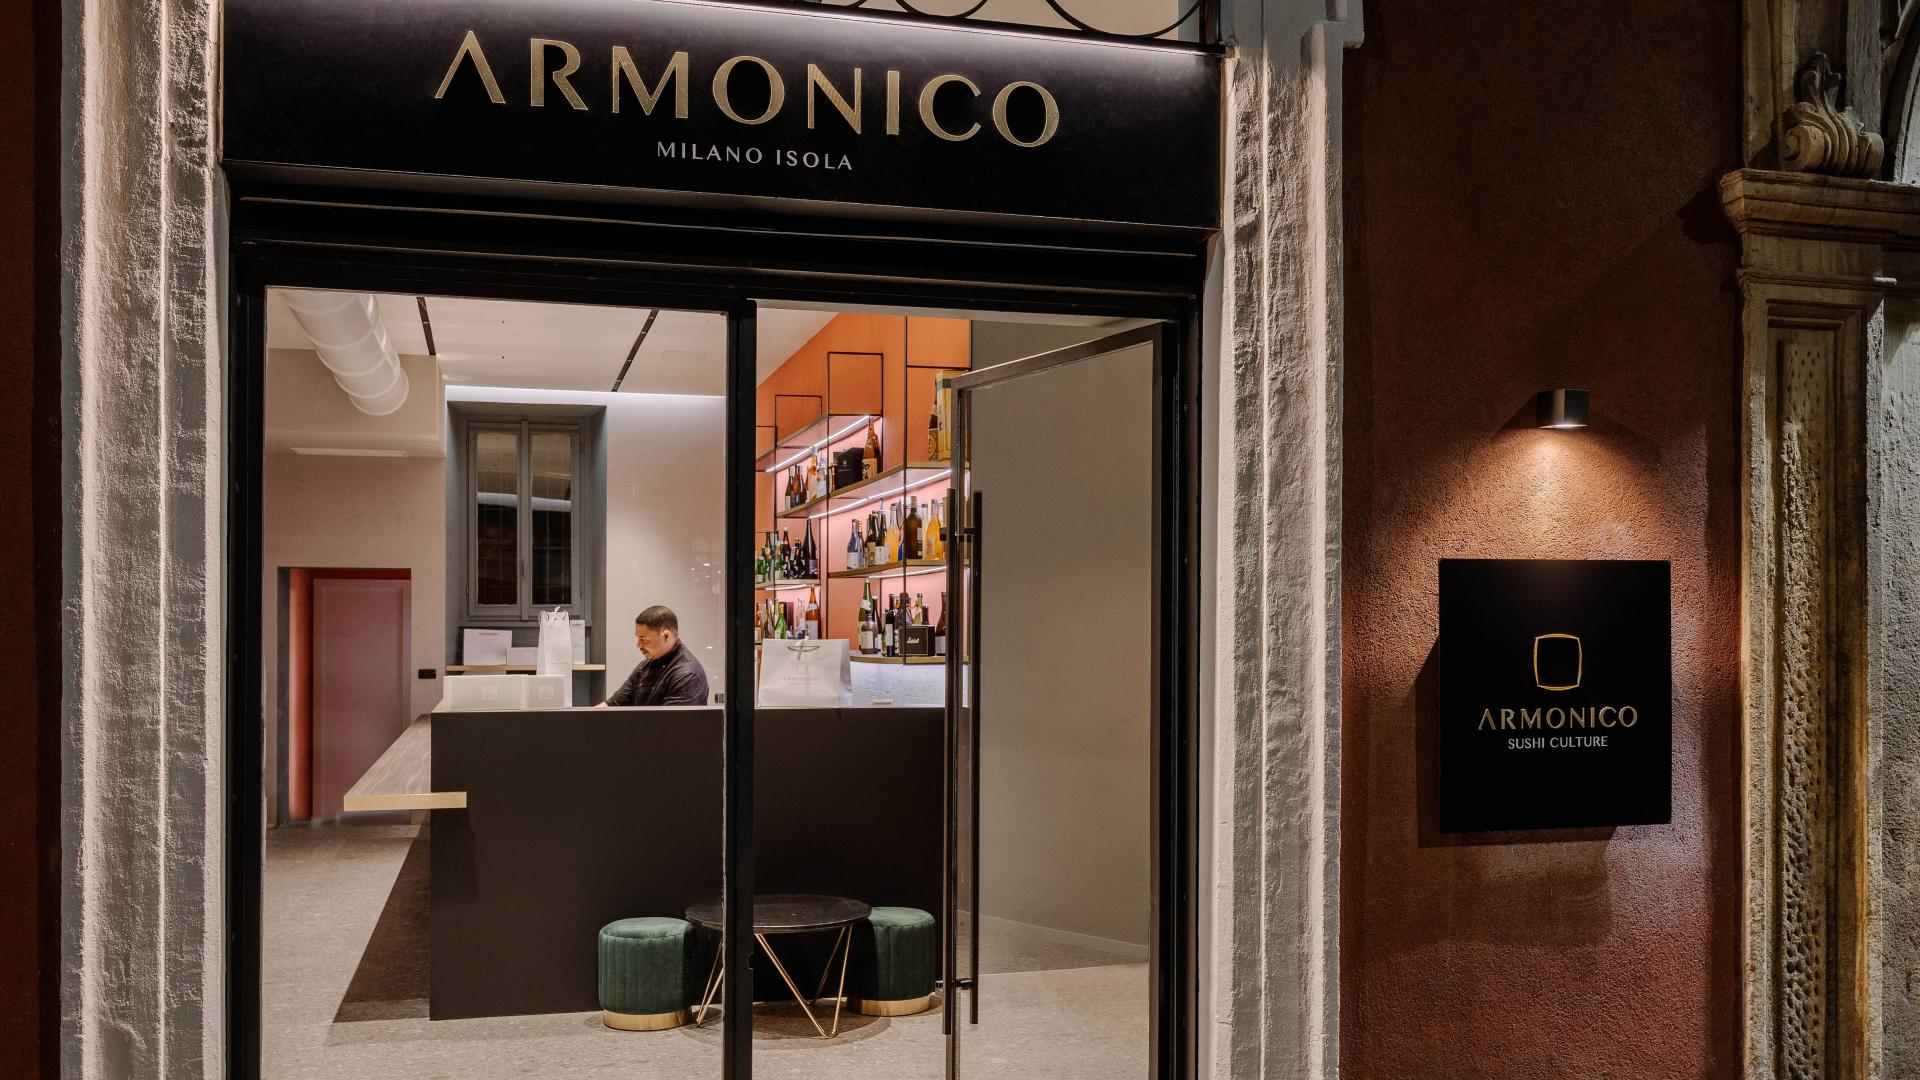 Armonico sushi Milano Italia and Partners